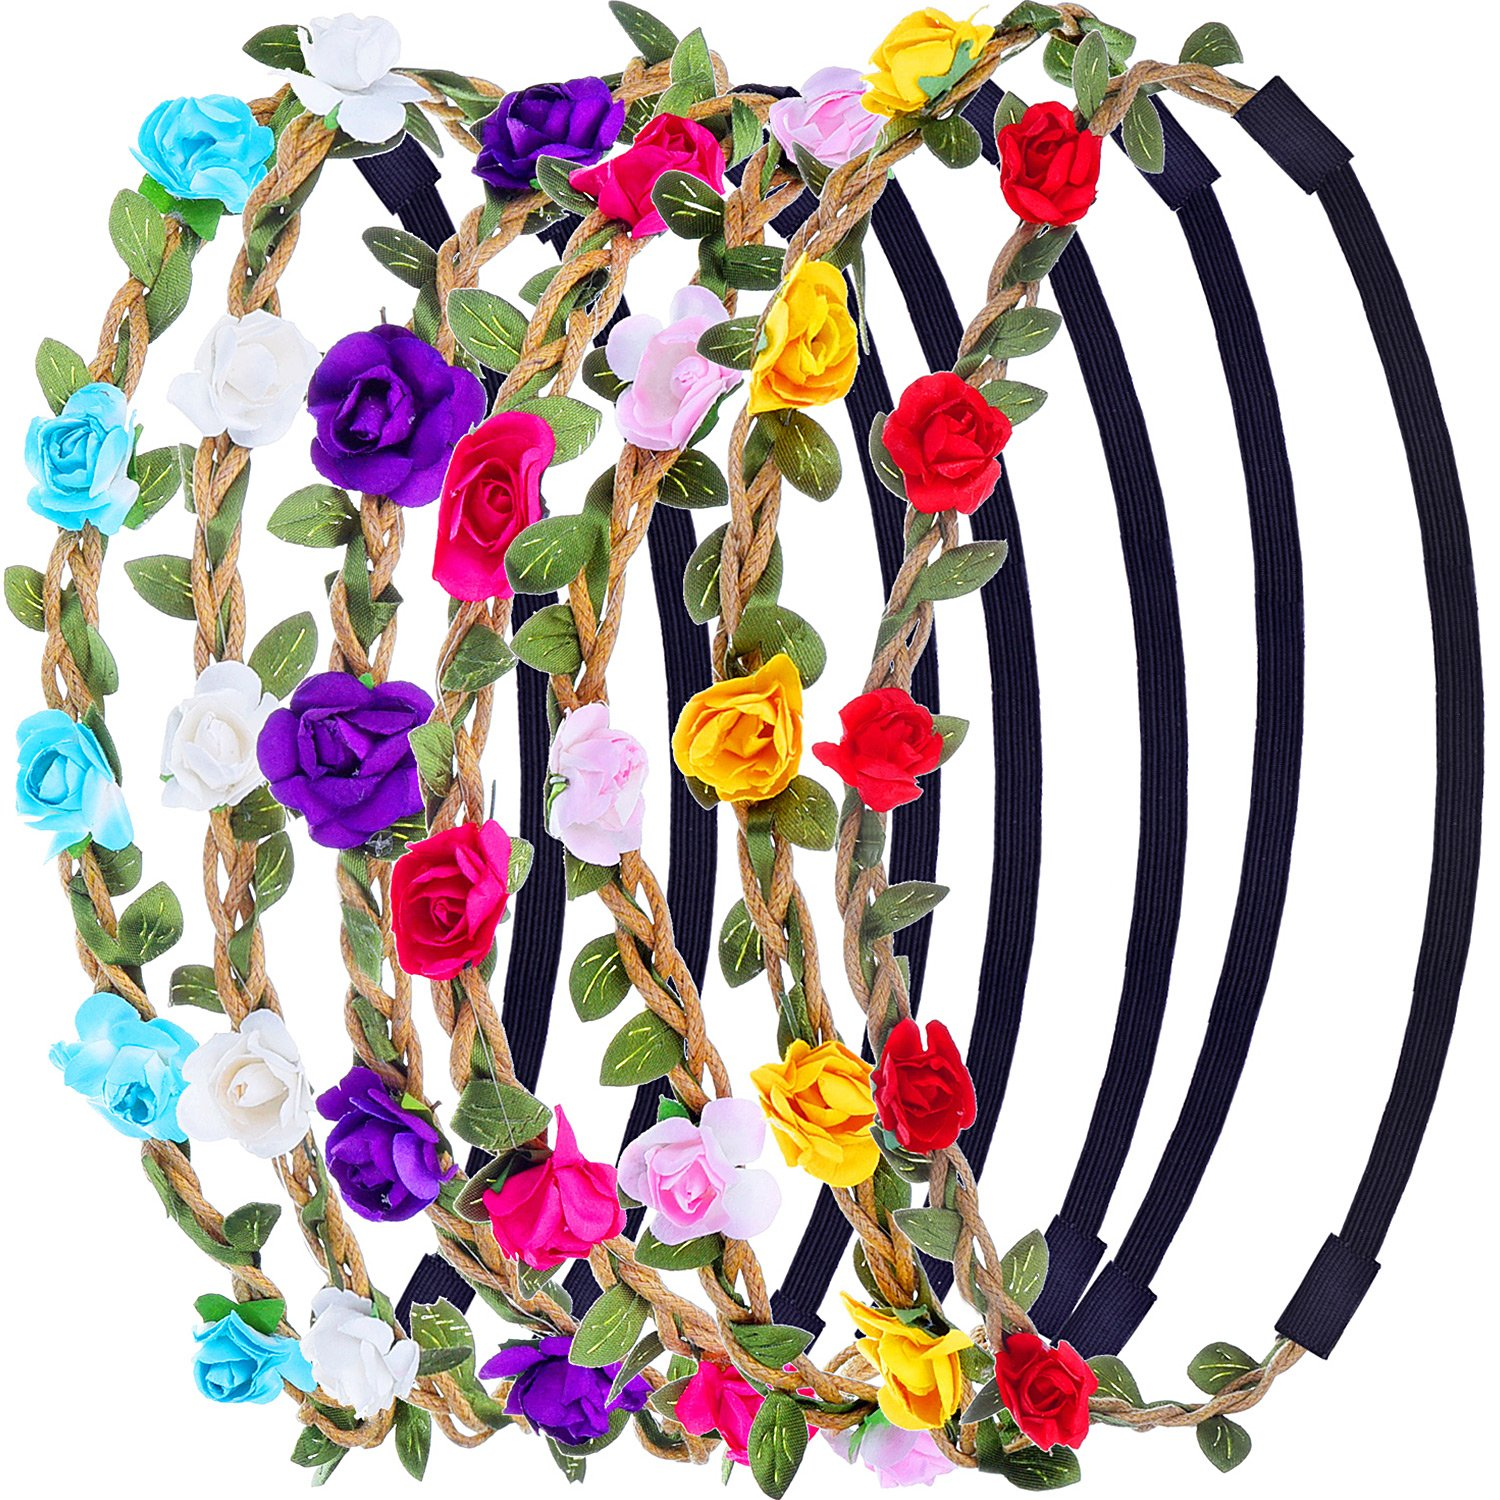 eBoot Multicolor Rose Flower Headband for Girls Hair